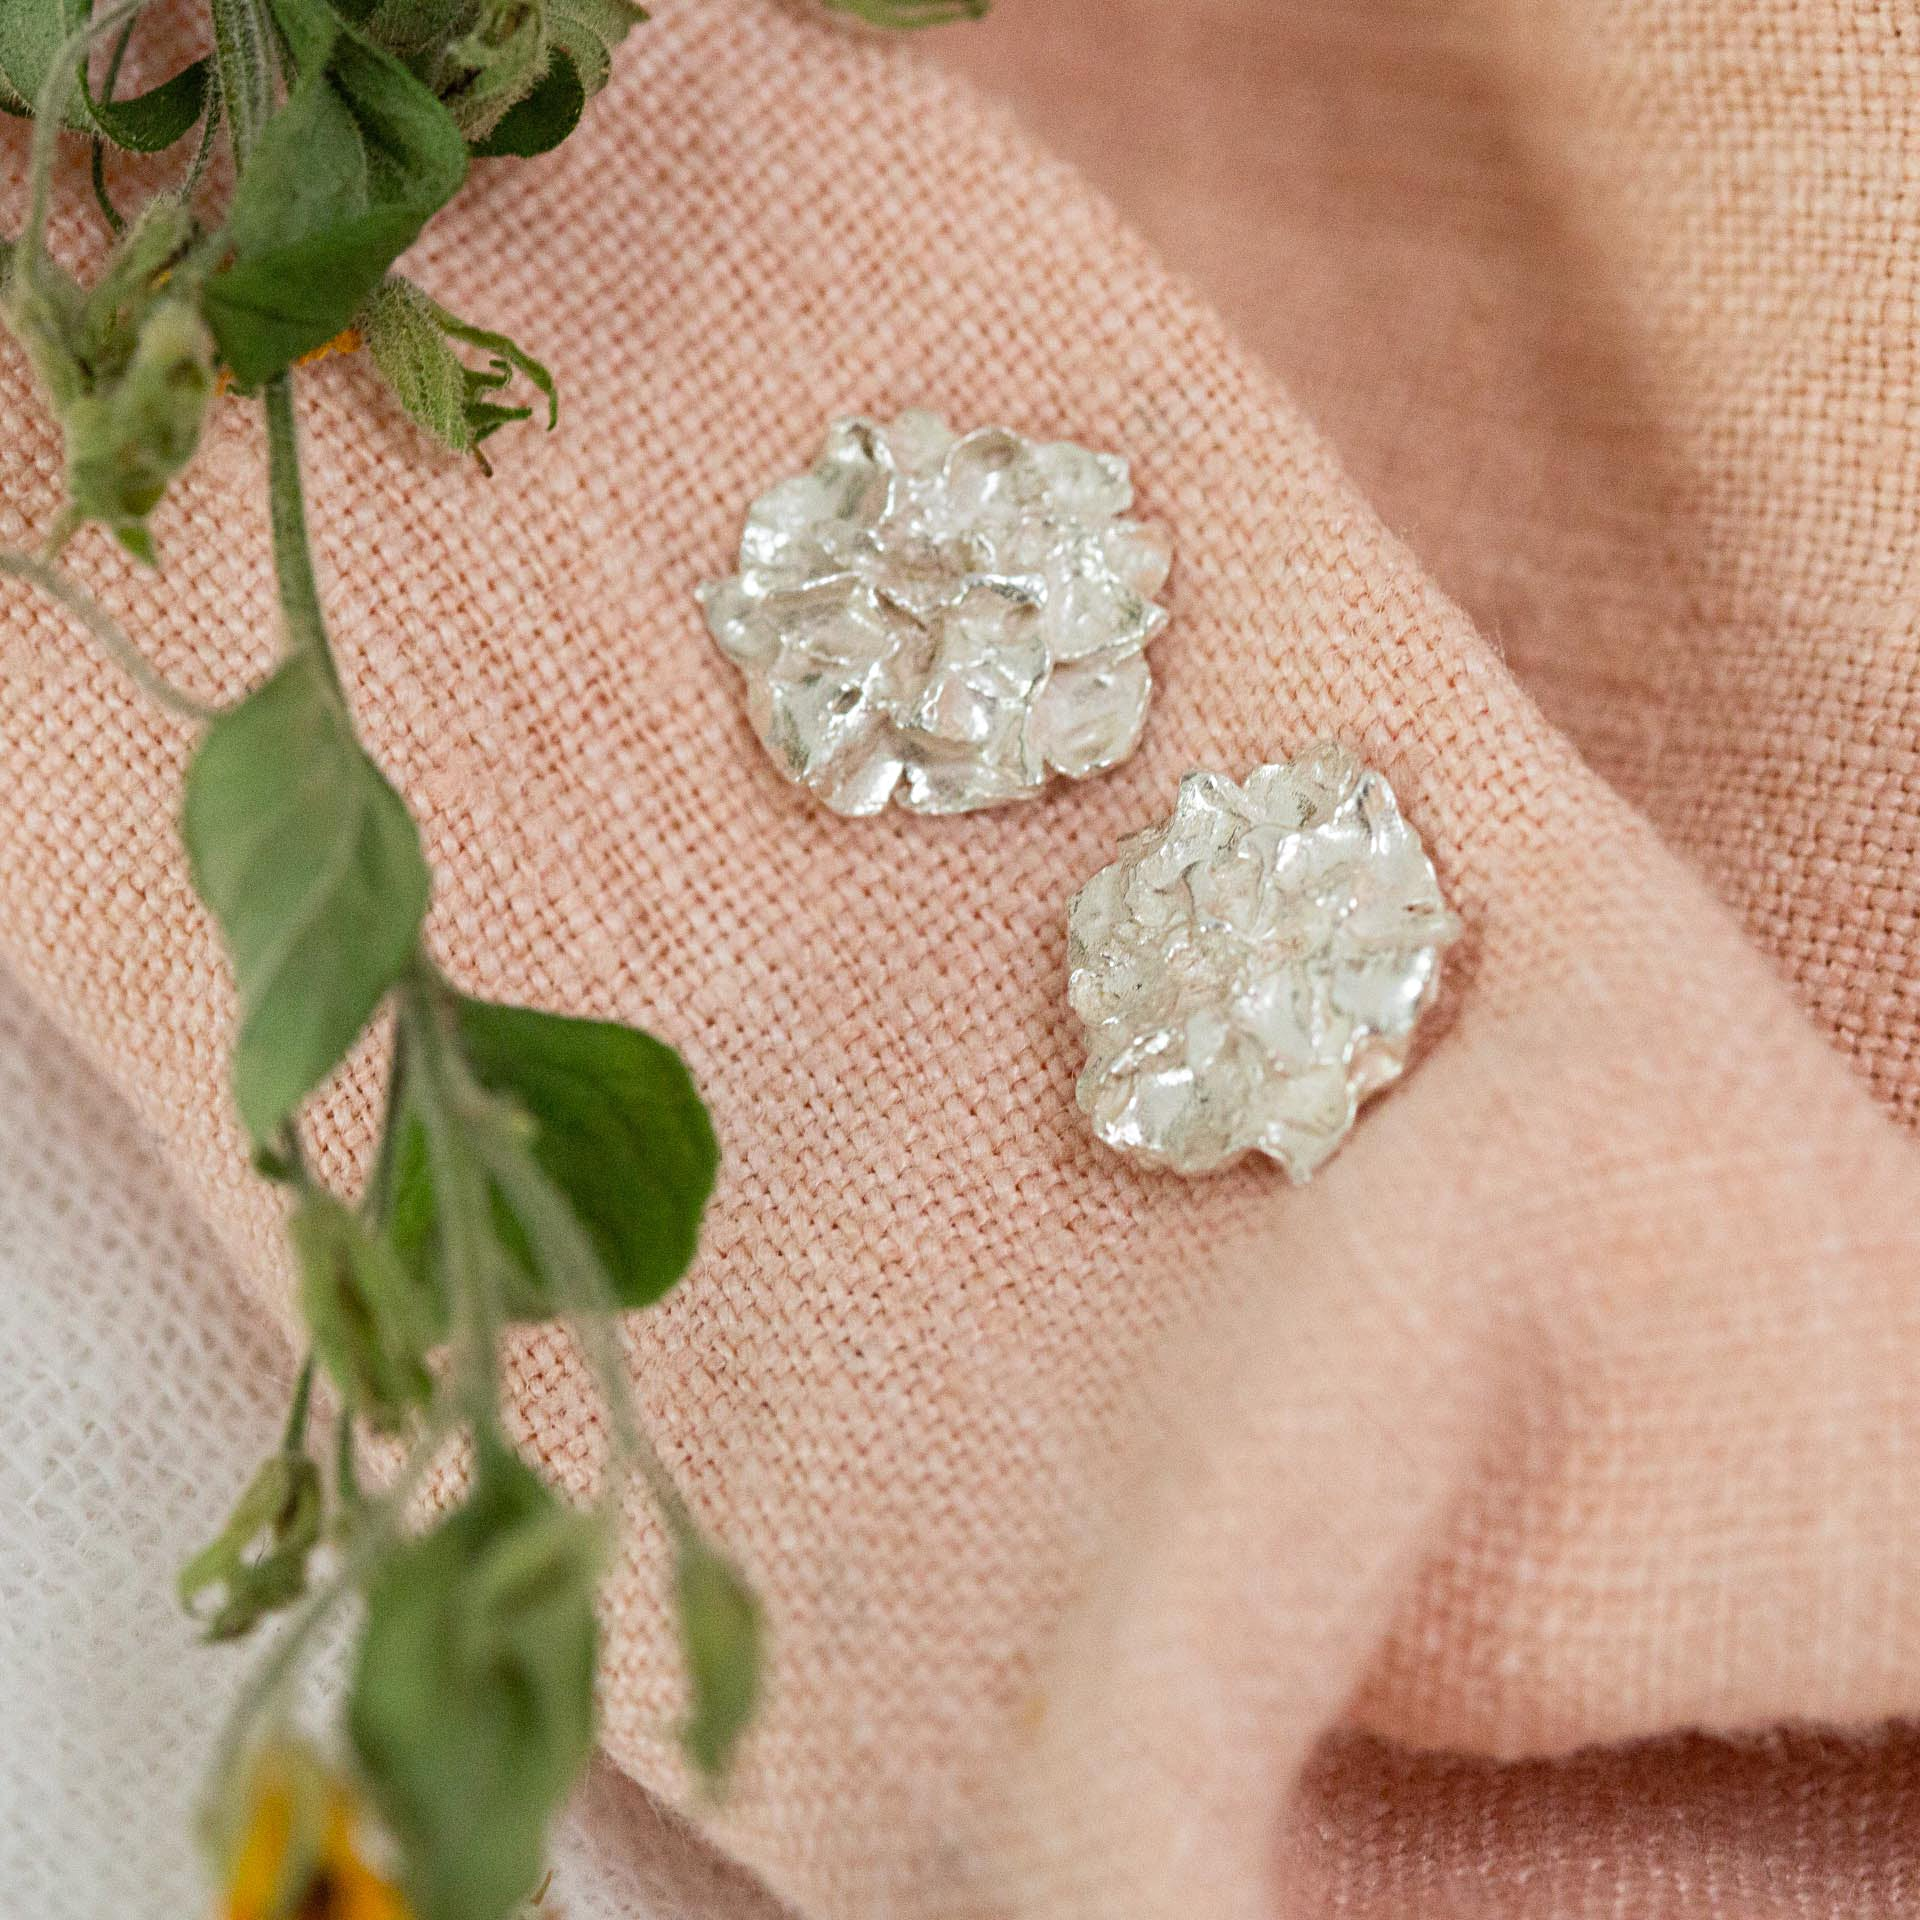 Silver Hedgerow Flower stud earrings on pink cloth next to dried flower